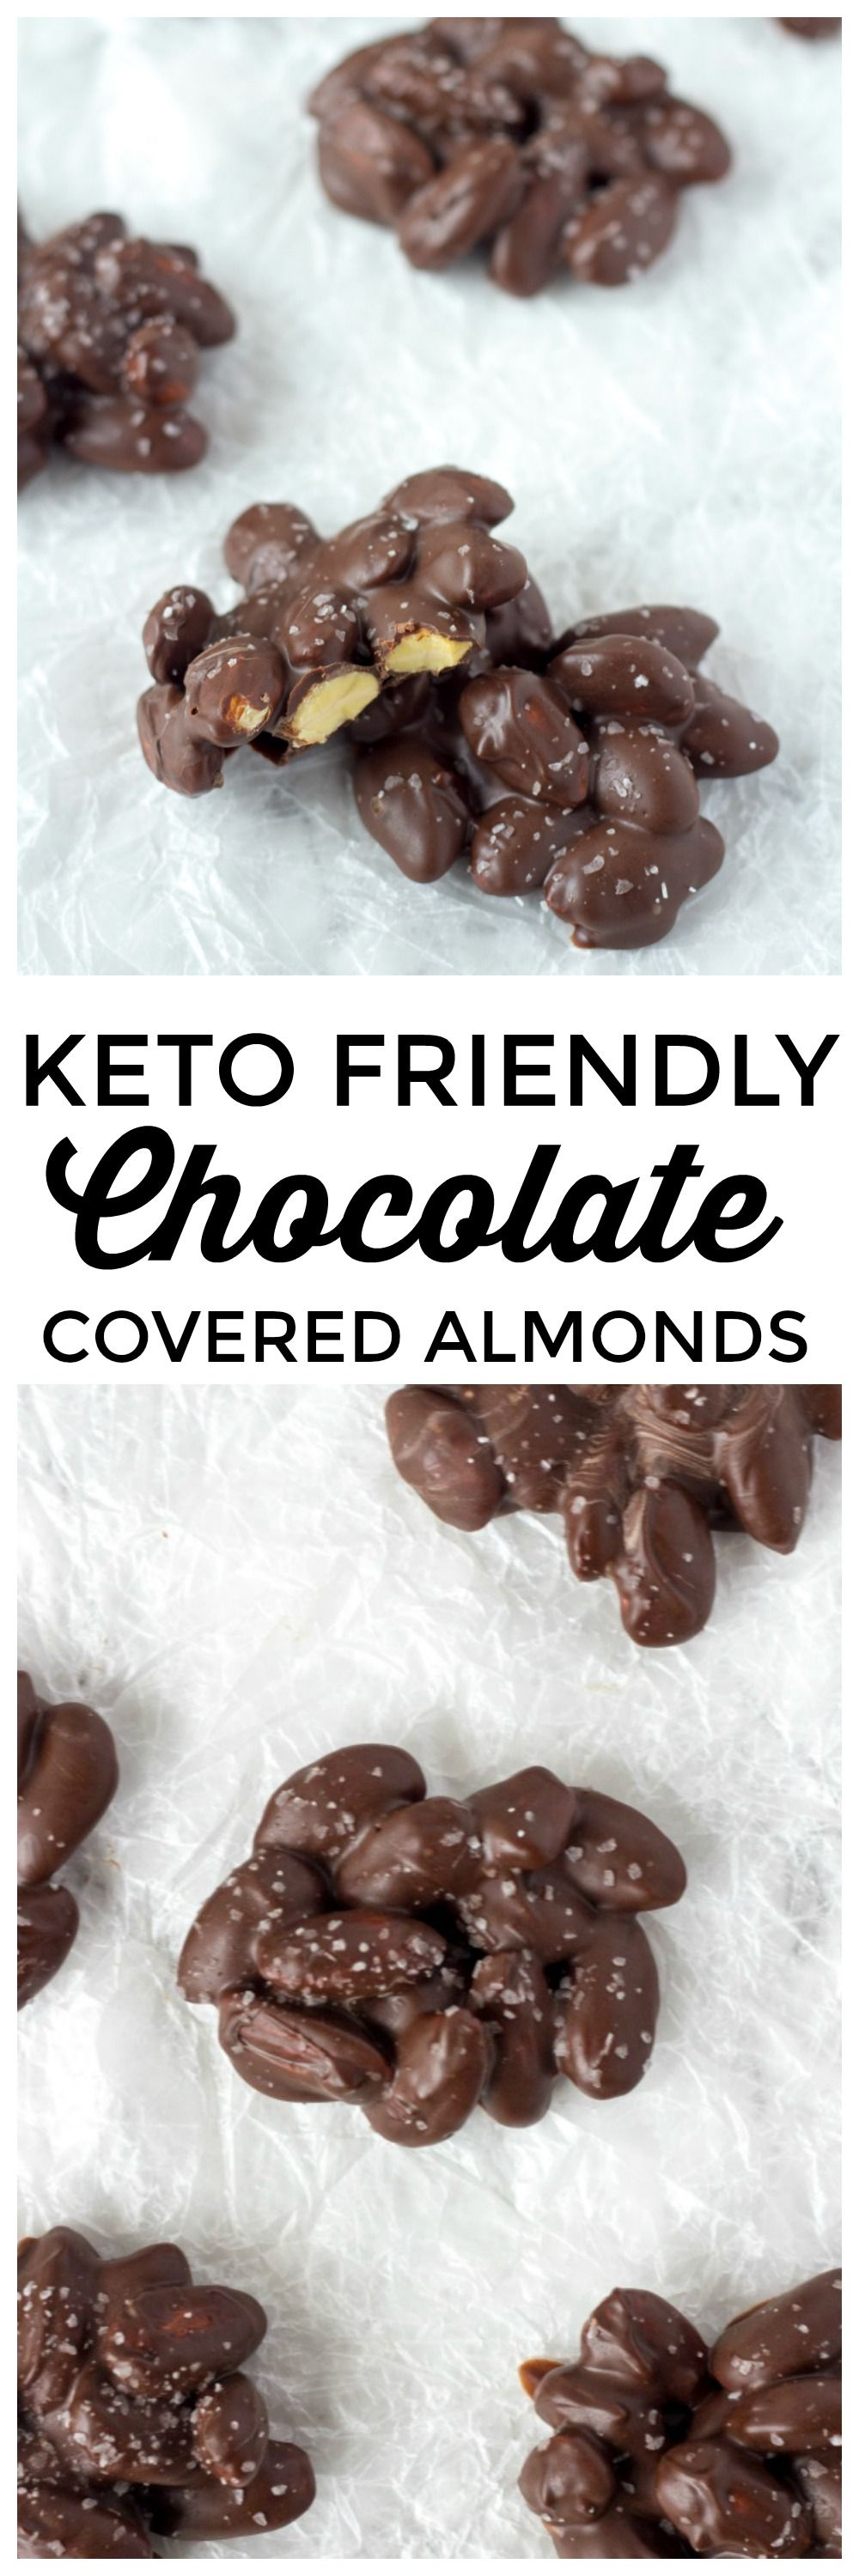 Keto Friendly Chocolate Covered Almonds Are The Perfect